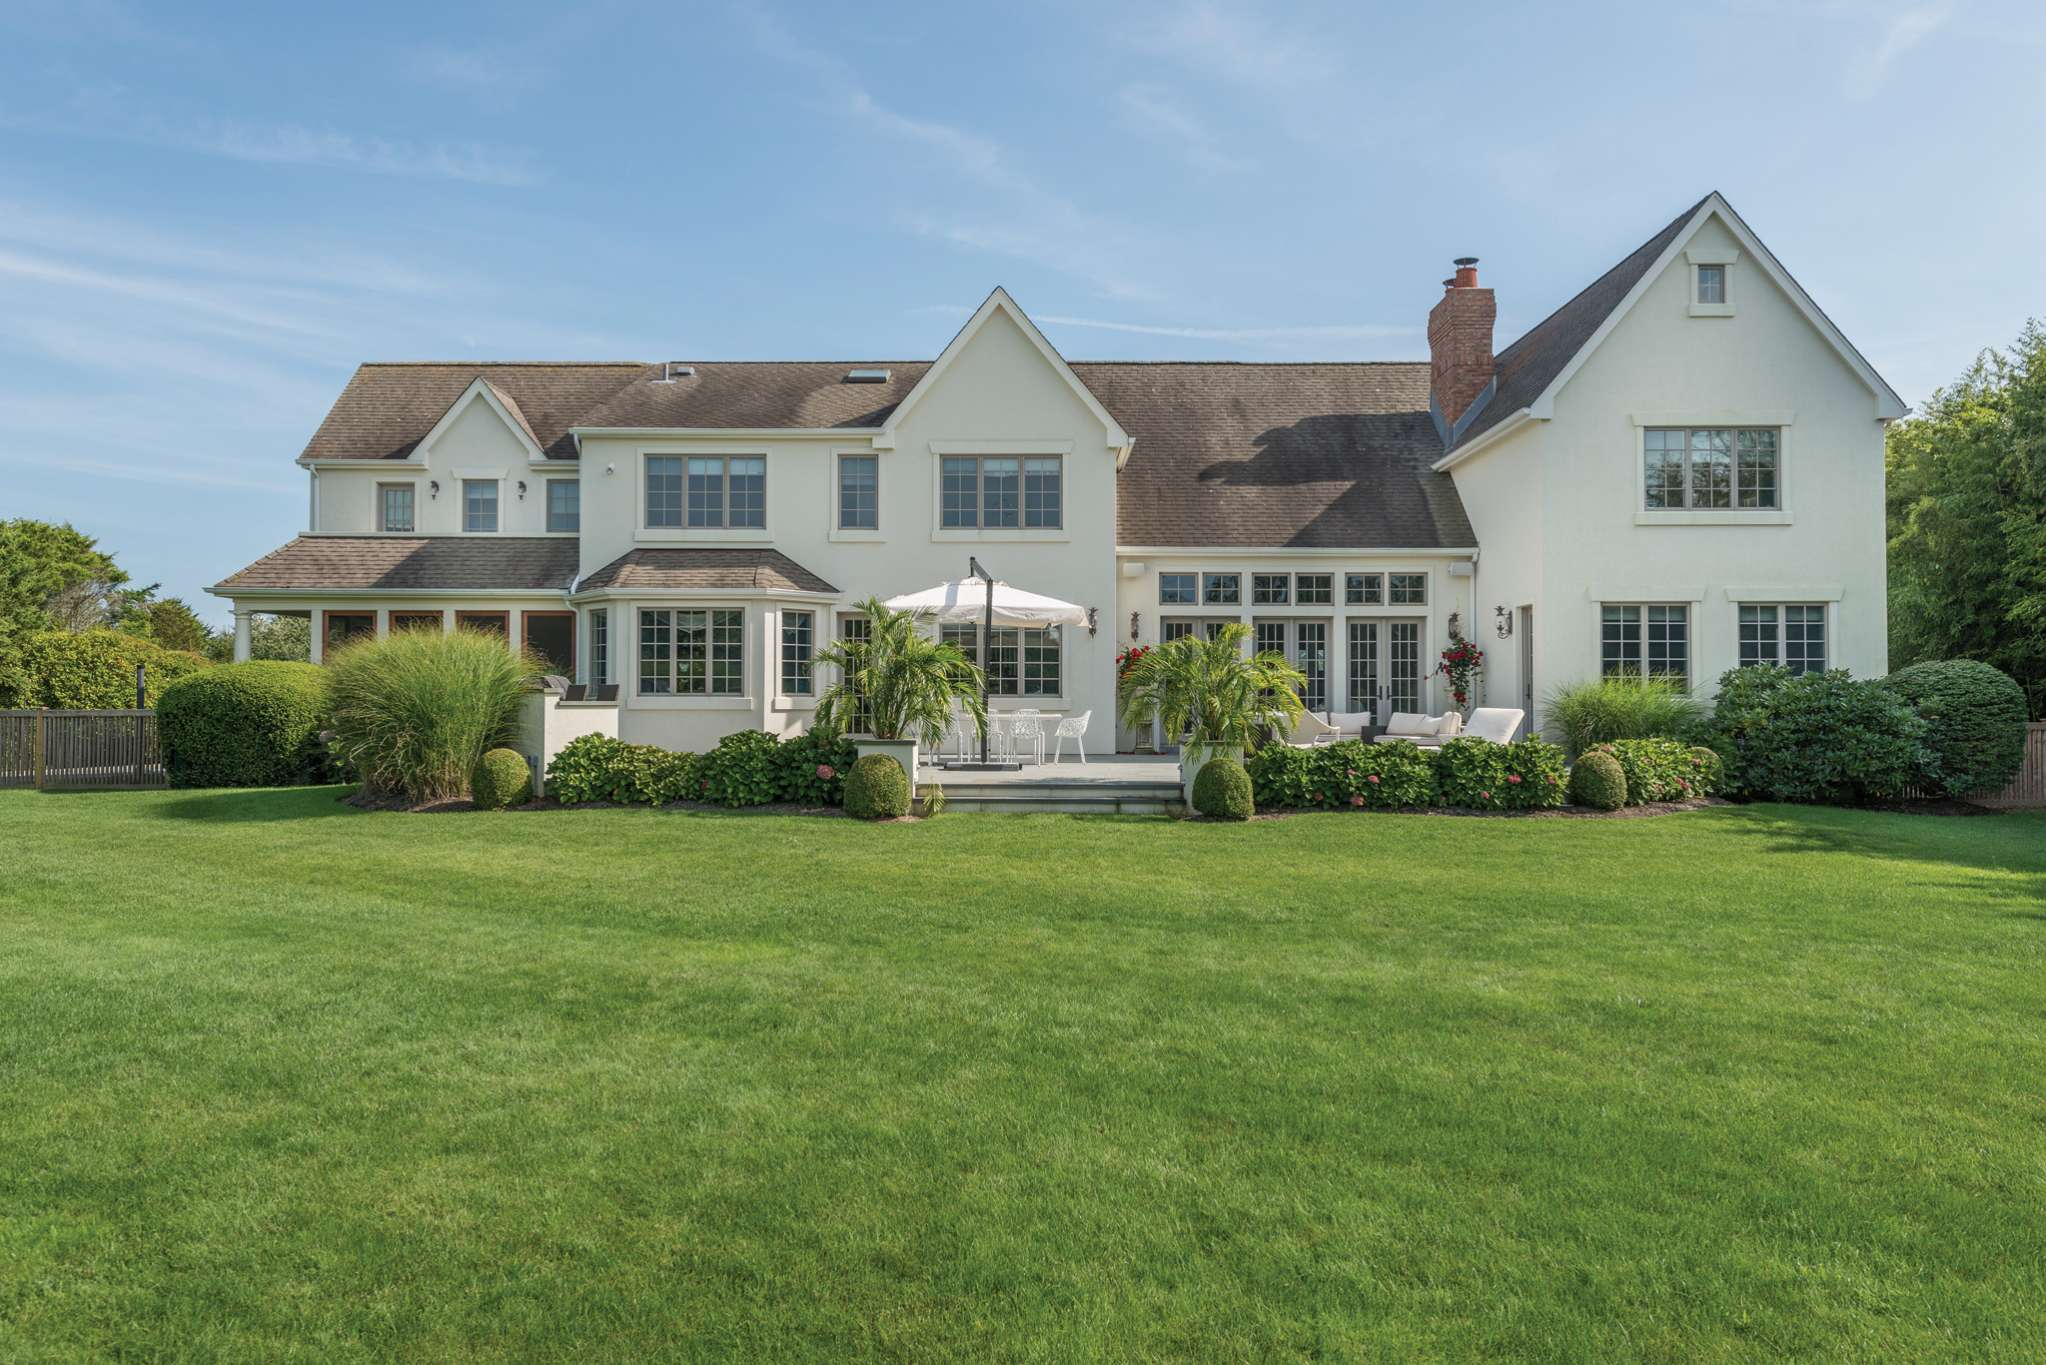 Casa Unifamiliar por un Alquiler en Bridgehampton Two Blocks From The Beach 160 Meadowlark Lane, Bridgehampton, Nueva York